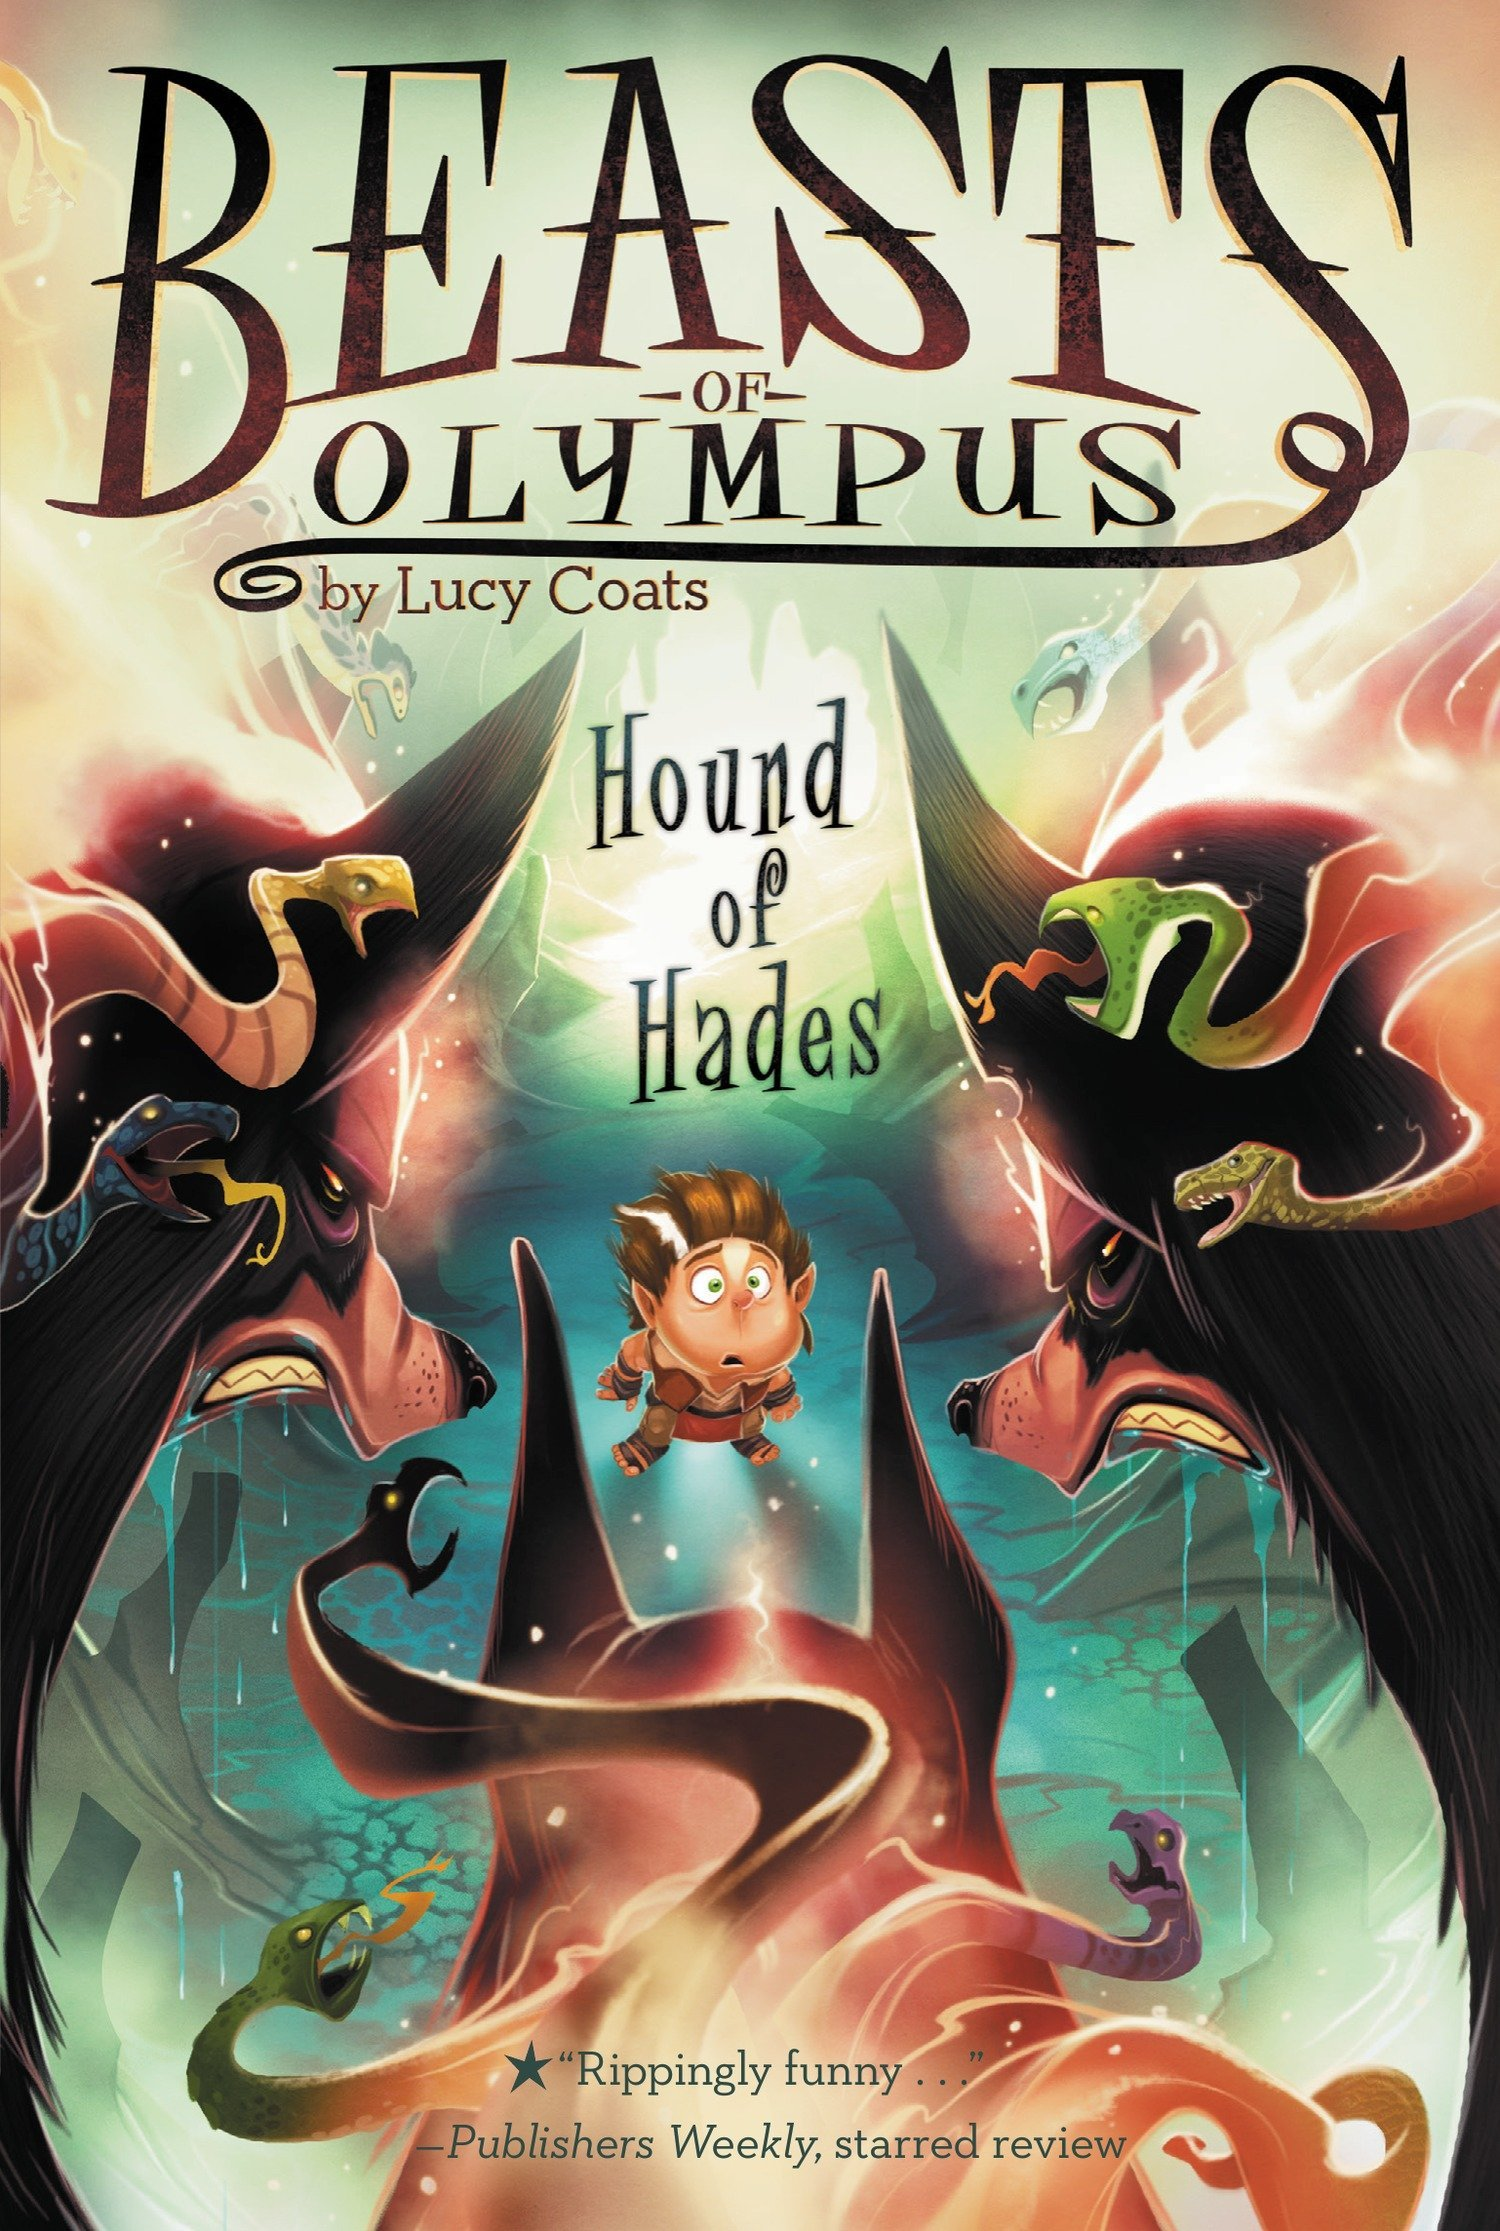 Download Hound of Hades #2 (Beasts of Olympus) PDF